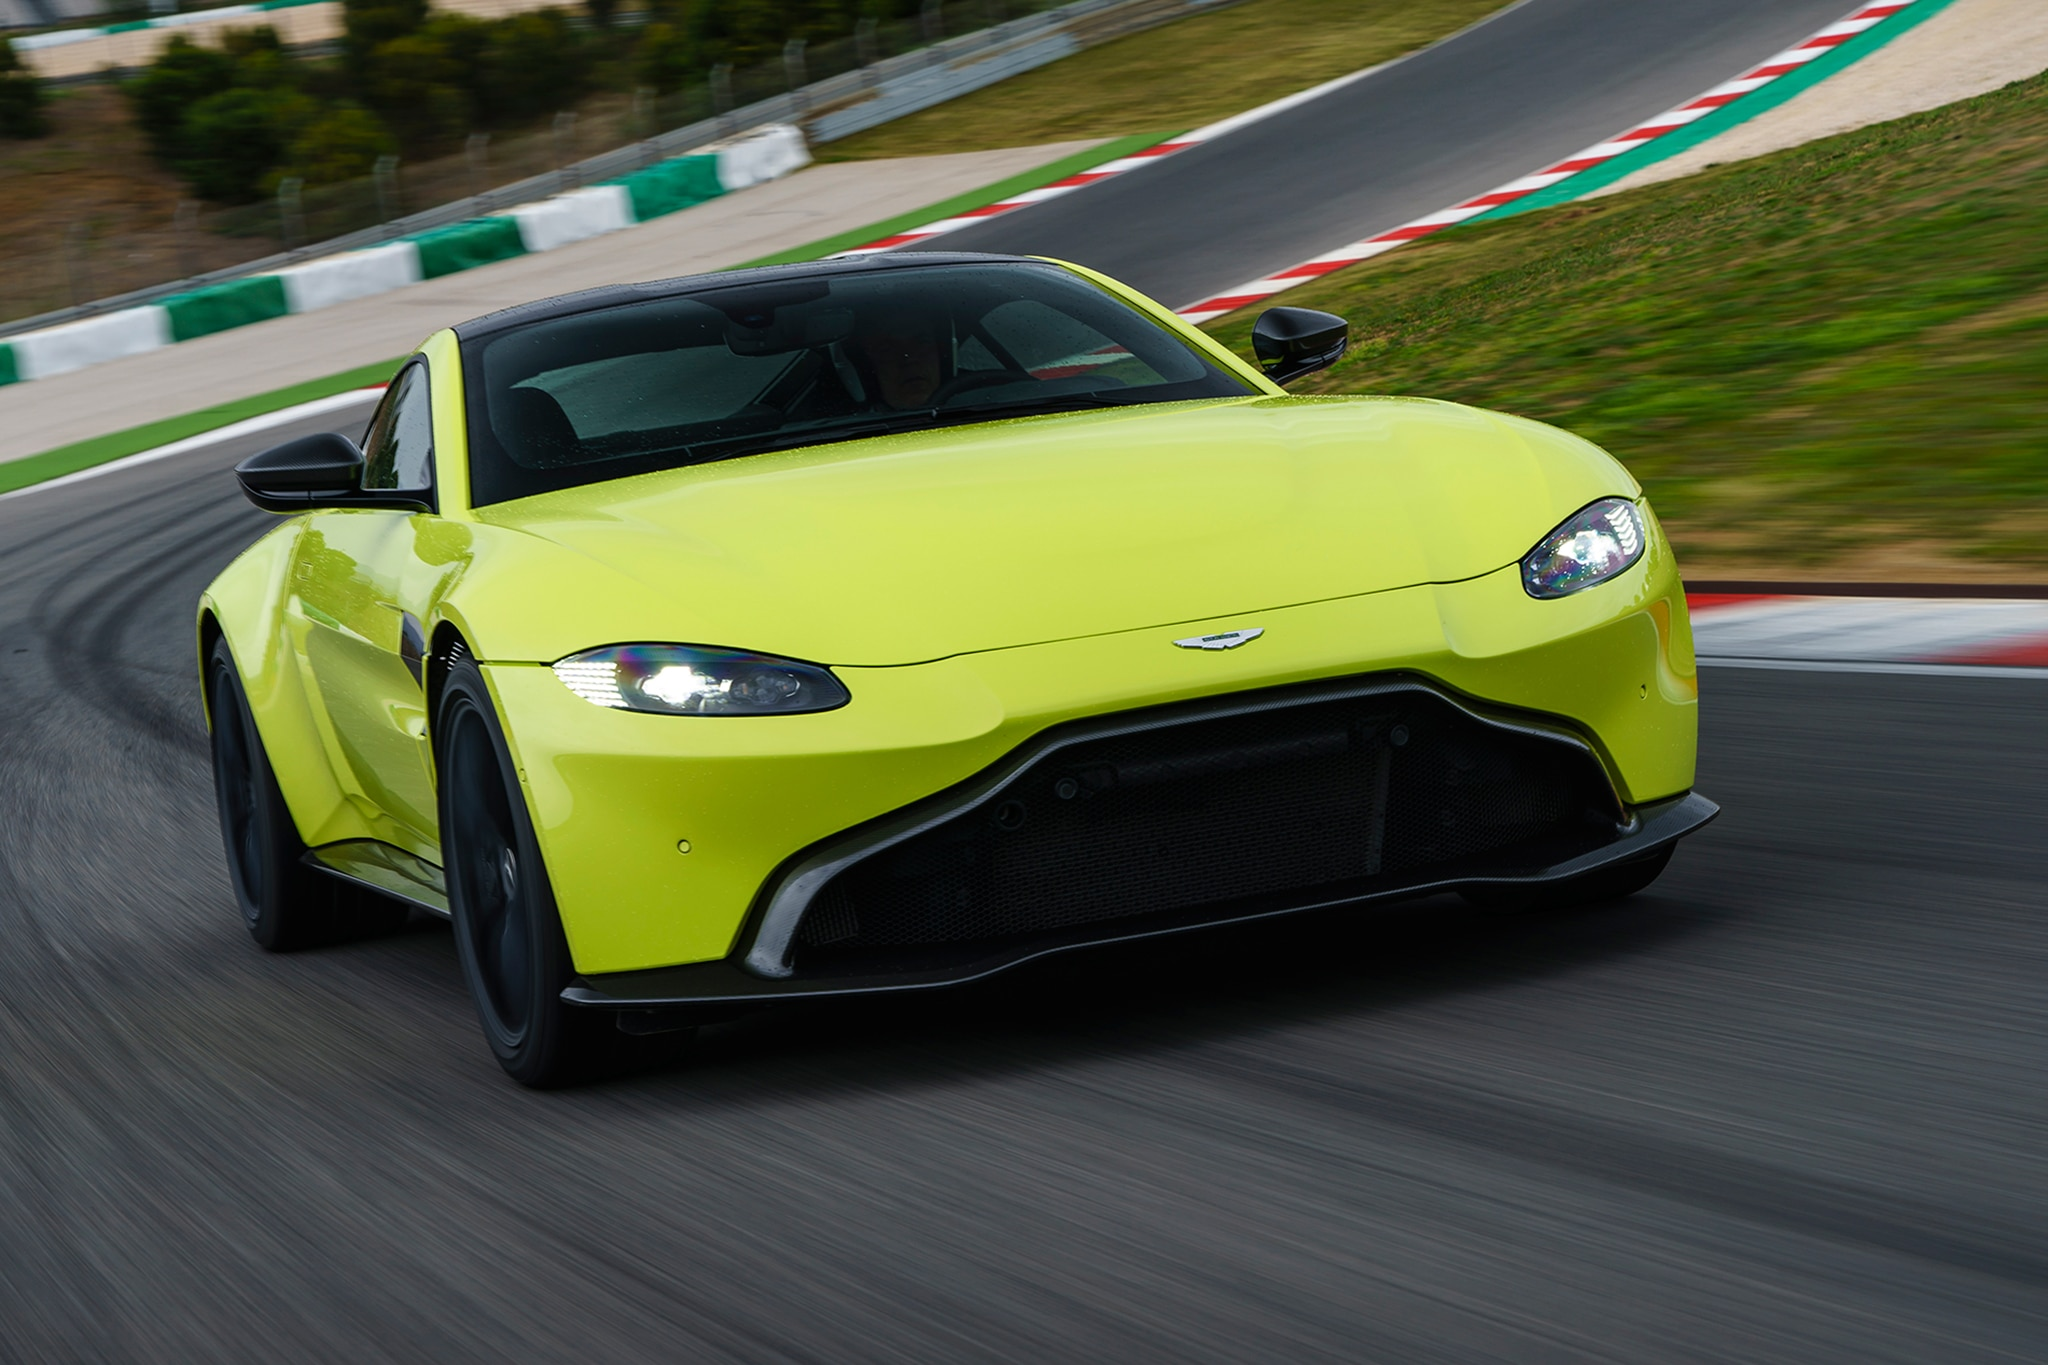 2019 Aston Martin V8 Vantage Front Three Quarter In Motion 14